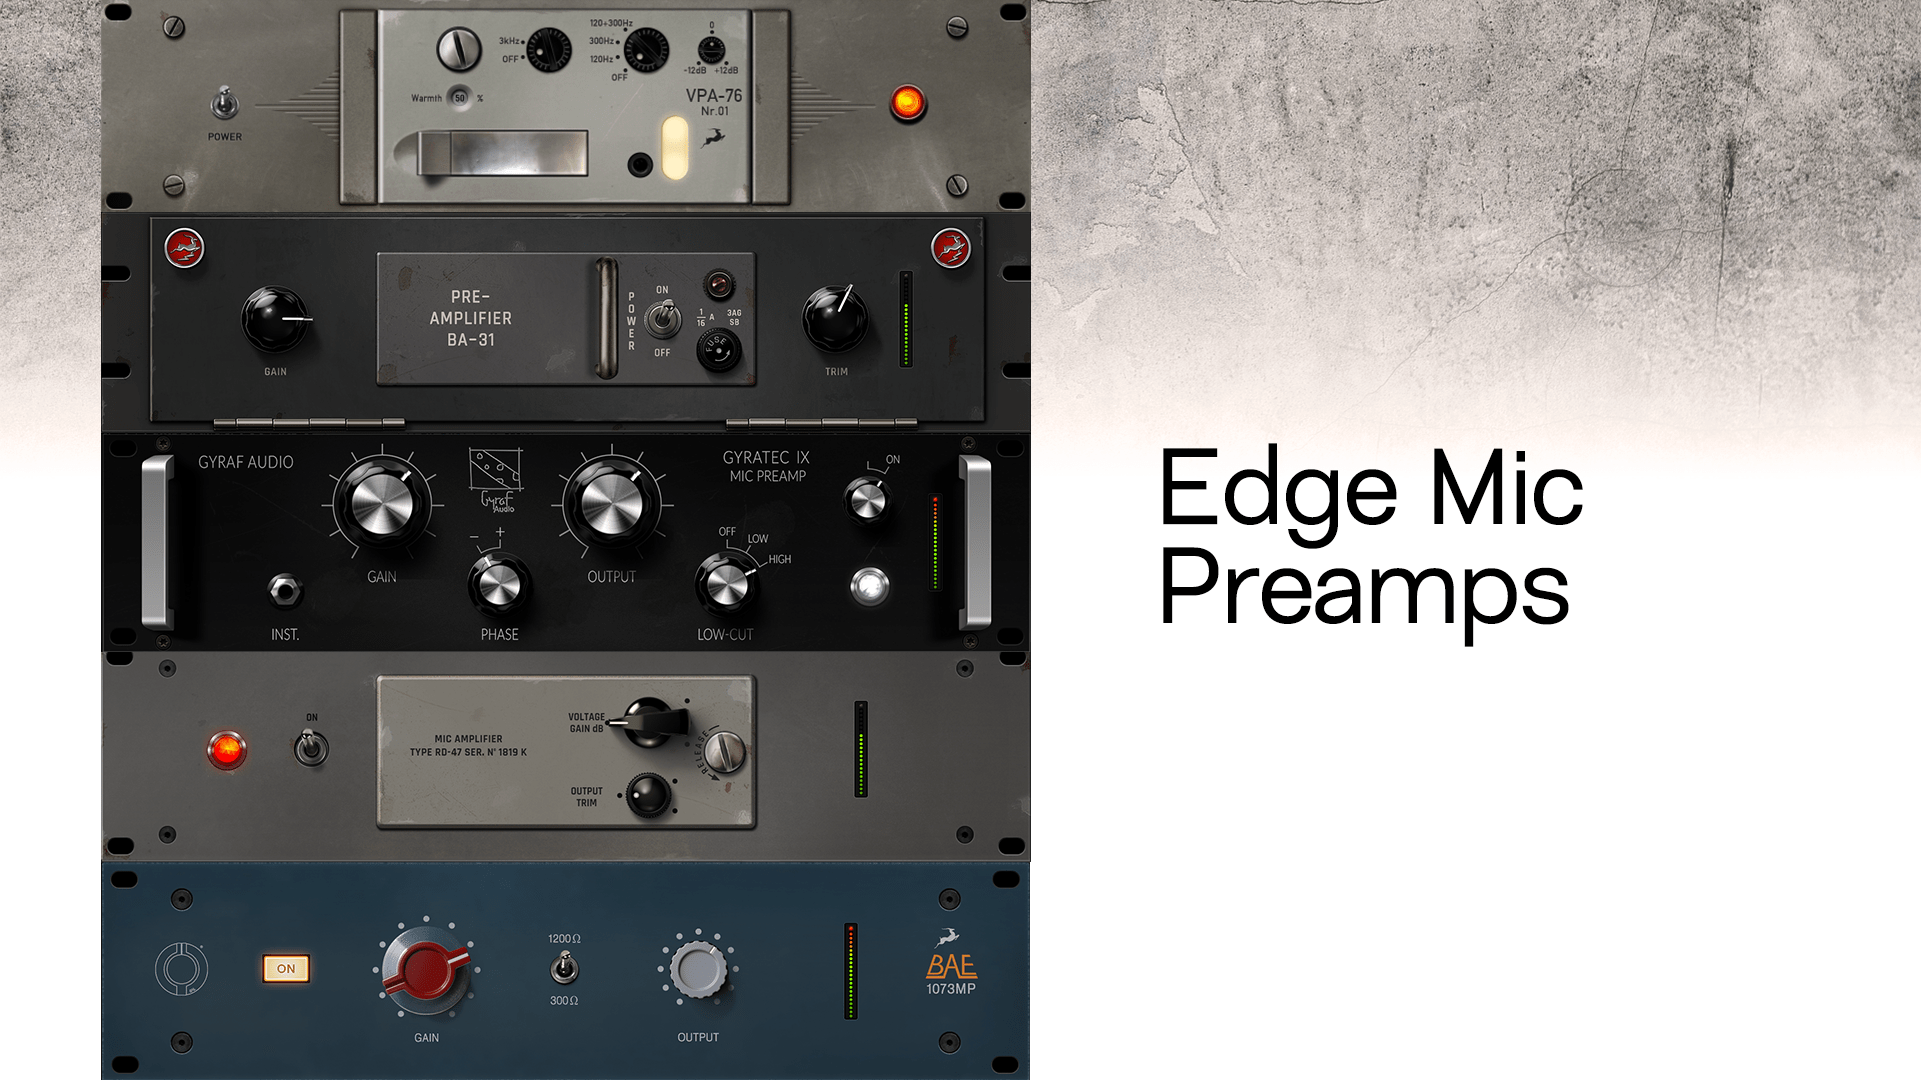 Edge Mic Preamps